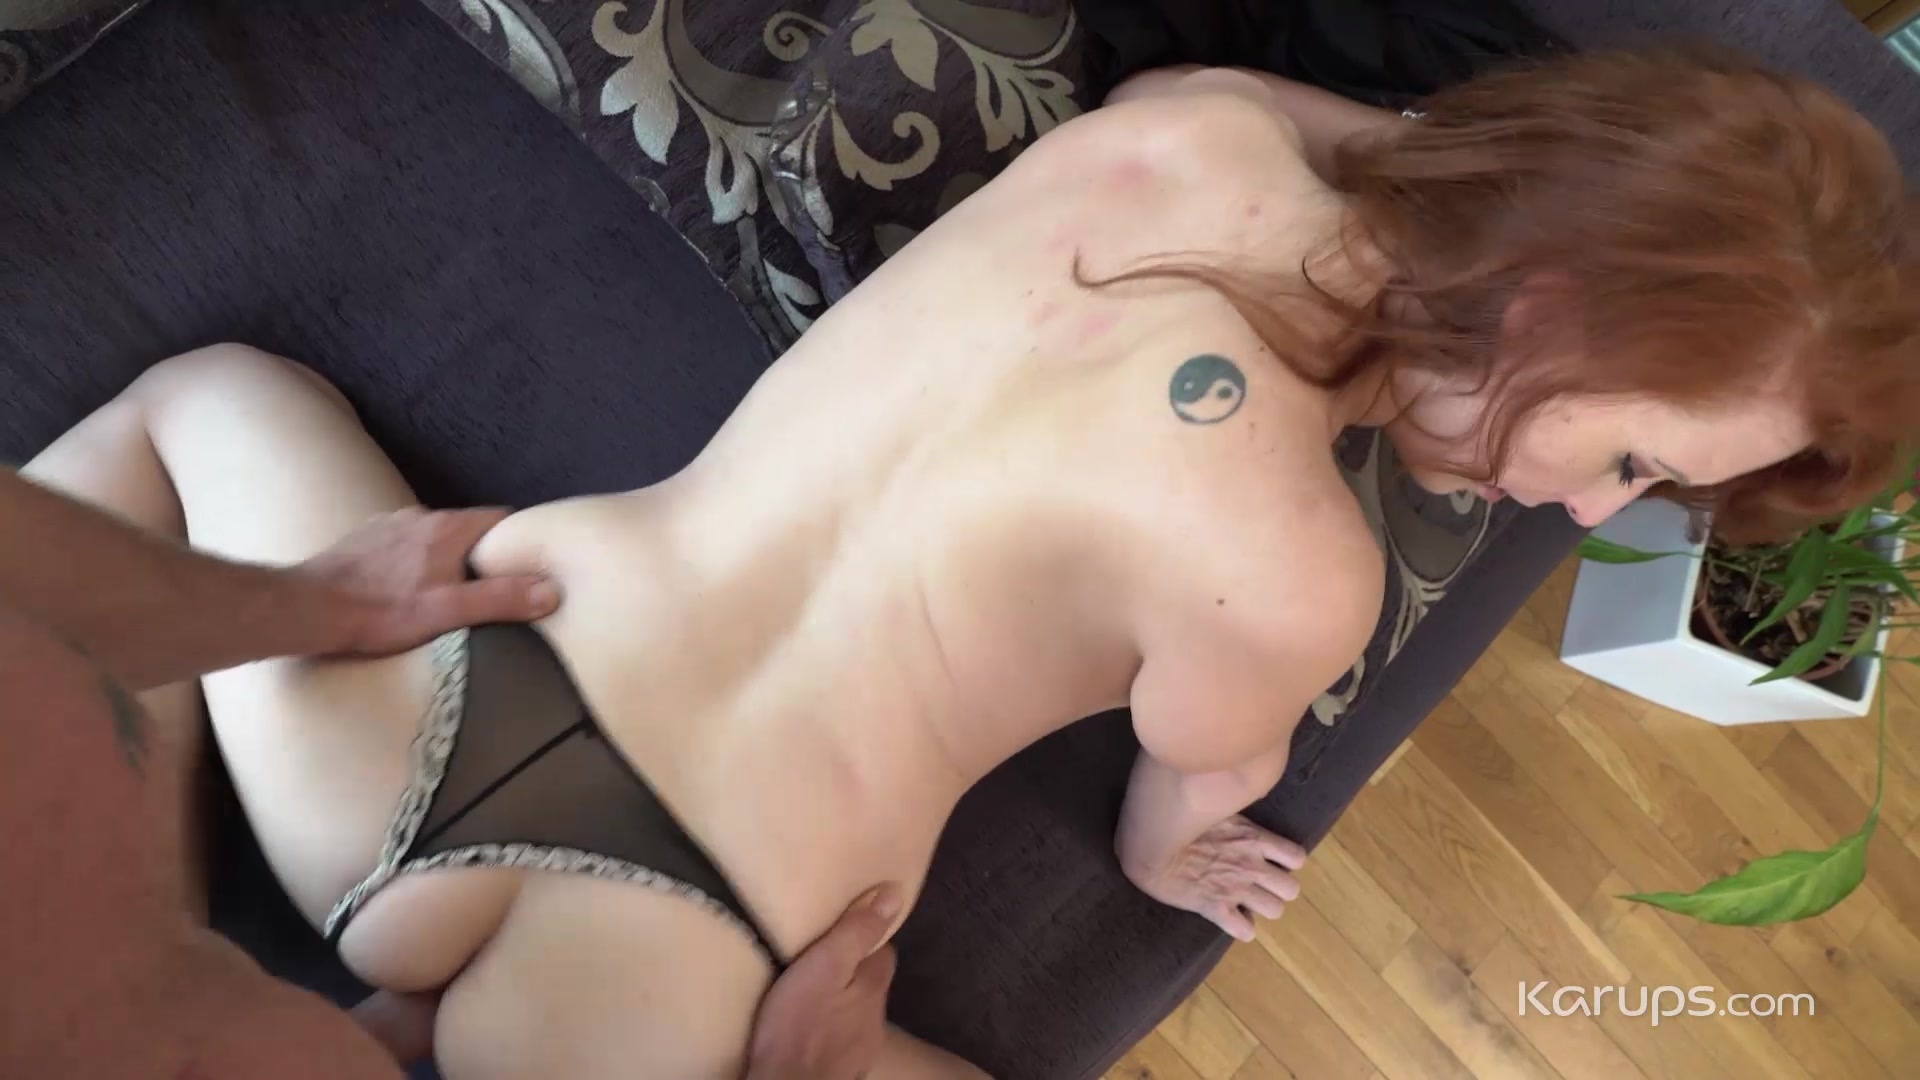 Video 1453043304: isabella lui, busty big tits milf, tit red head milf, big tits mature milf, girl takes cock, takes good cock, cock takes mouthful, girl knees